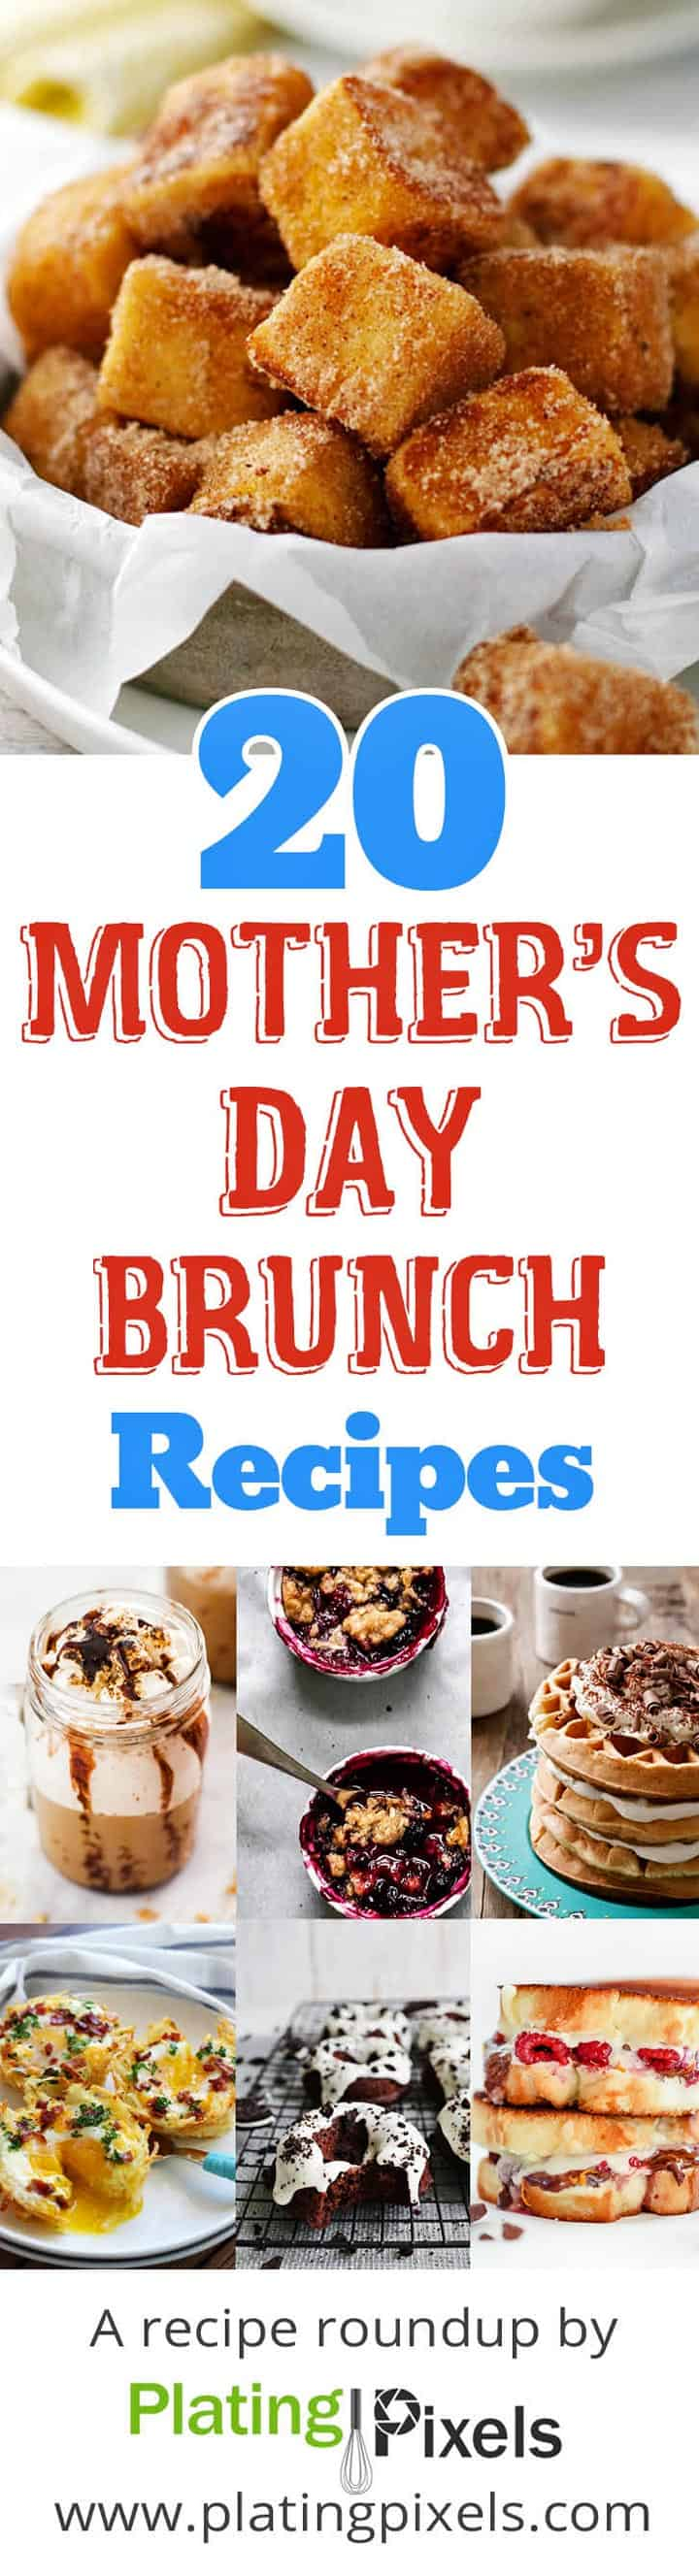 20 Mother's Day Brunch Recipes roundup image collage with text